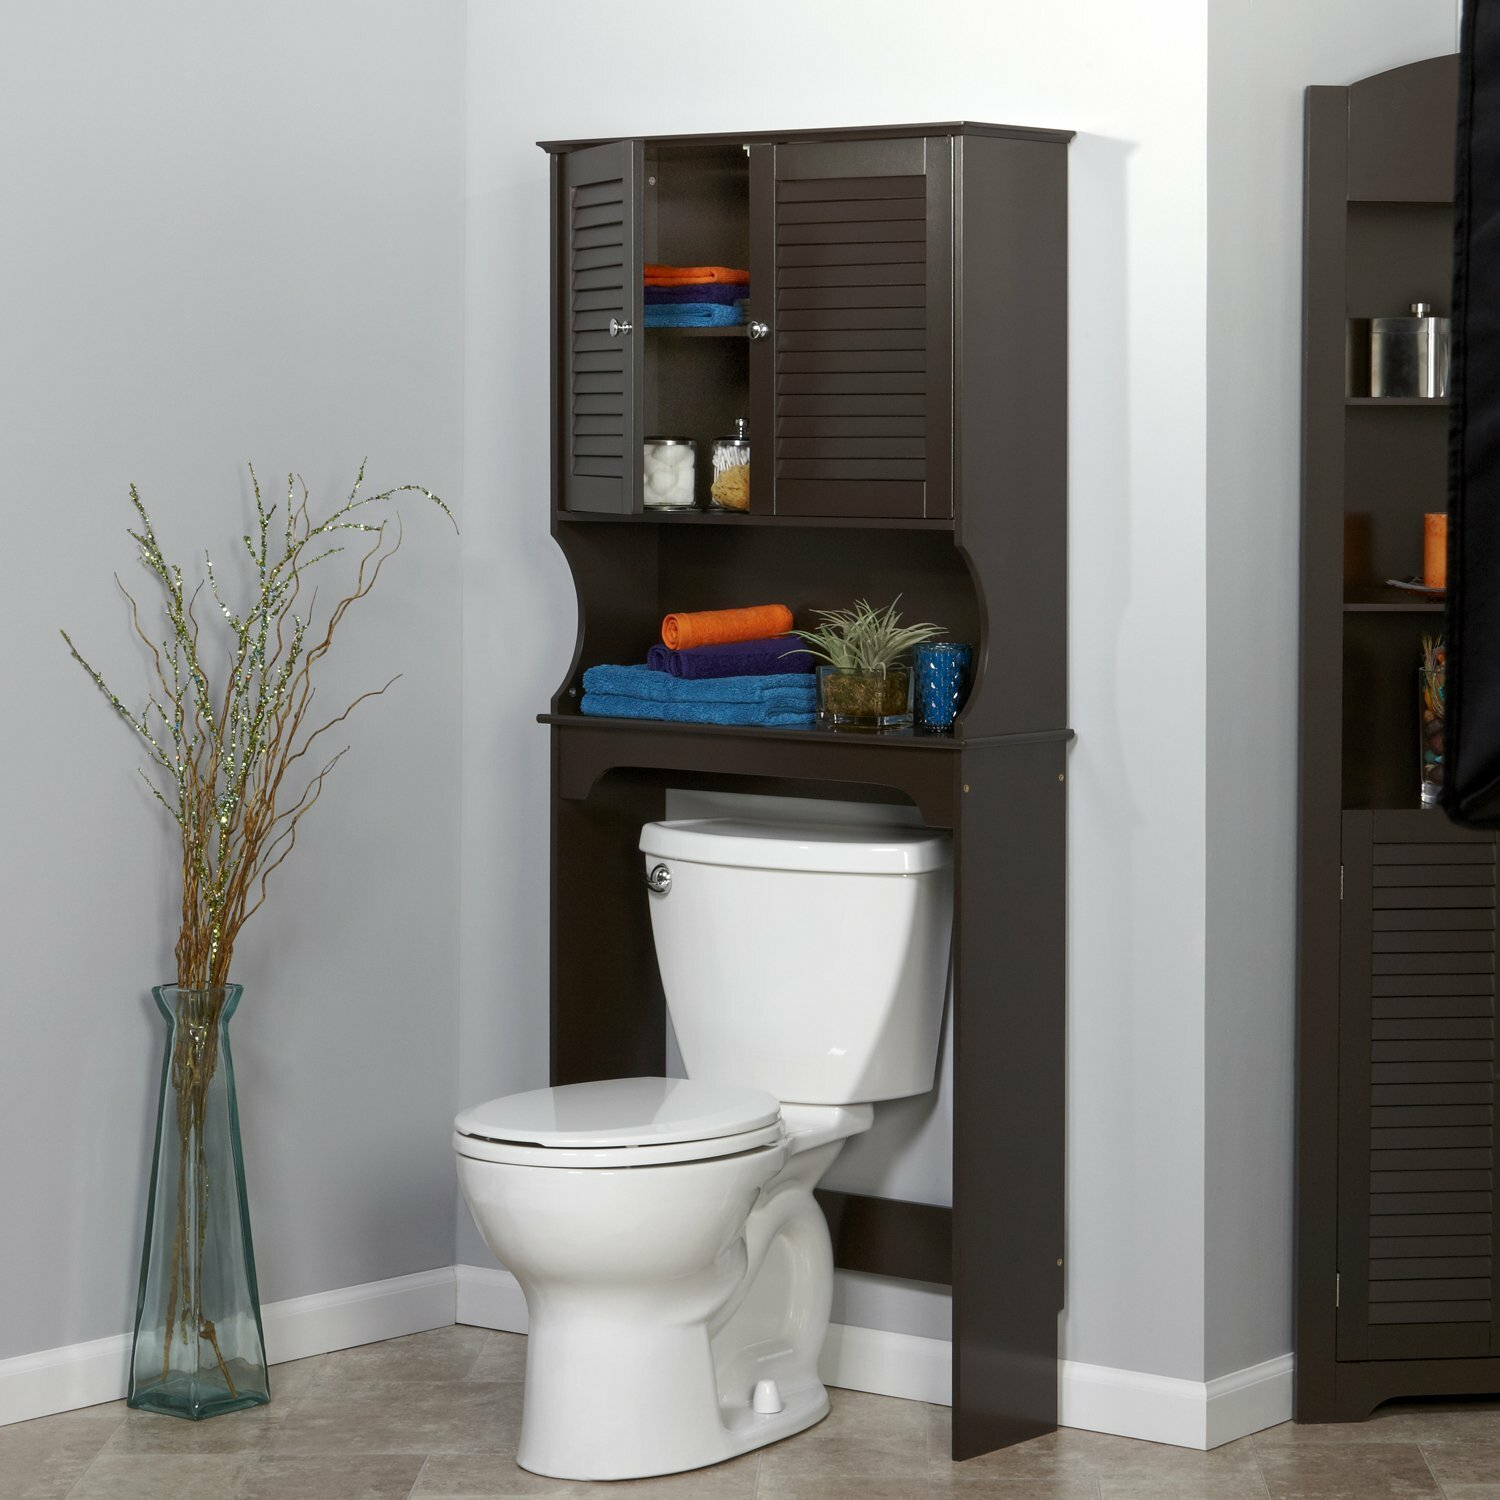 over diy toilet cabinets space furniture ideas etagere the bathroom etageres corner saver